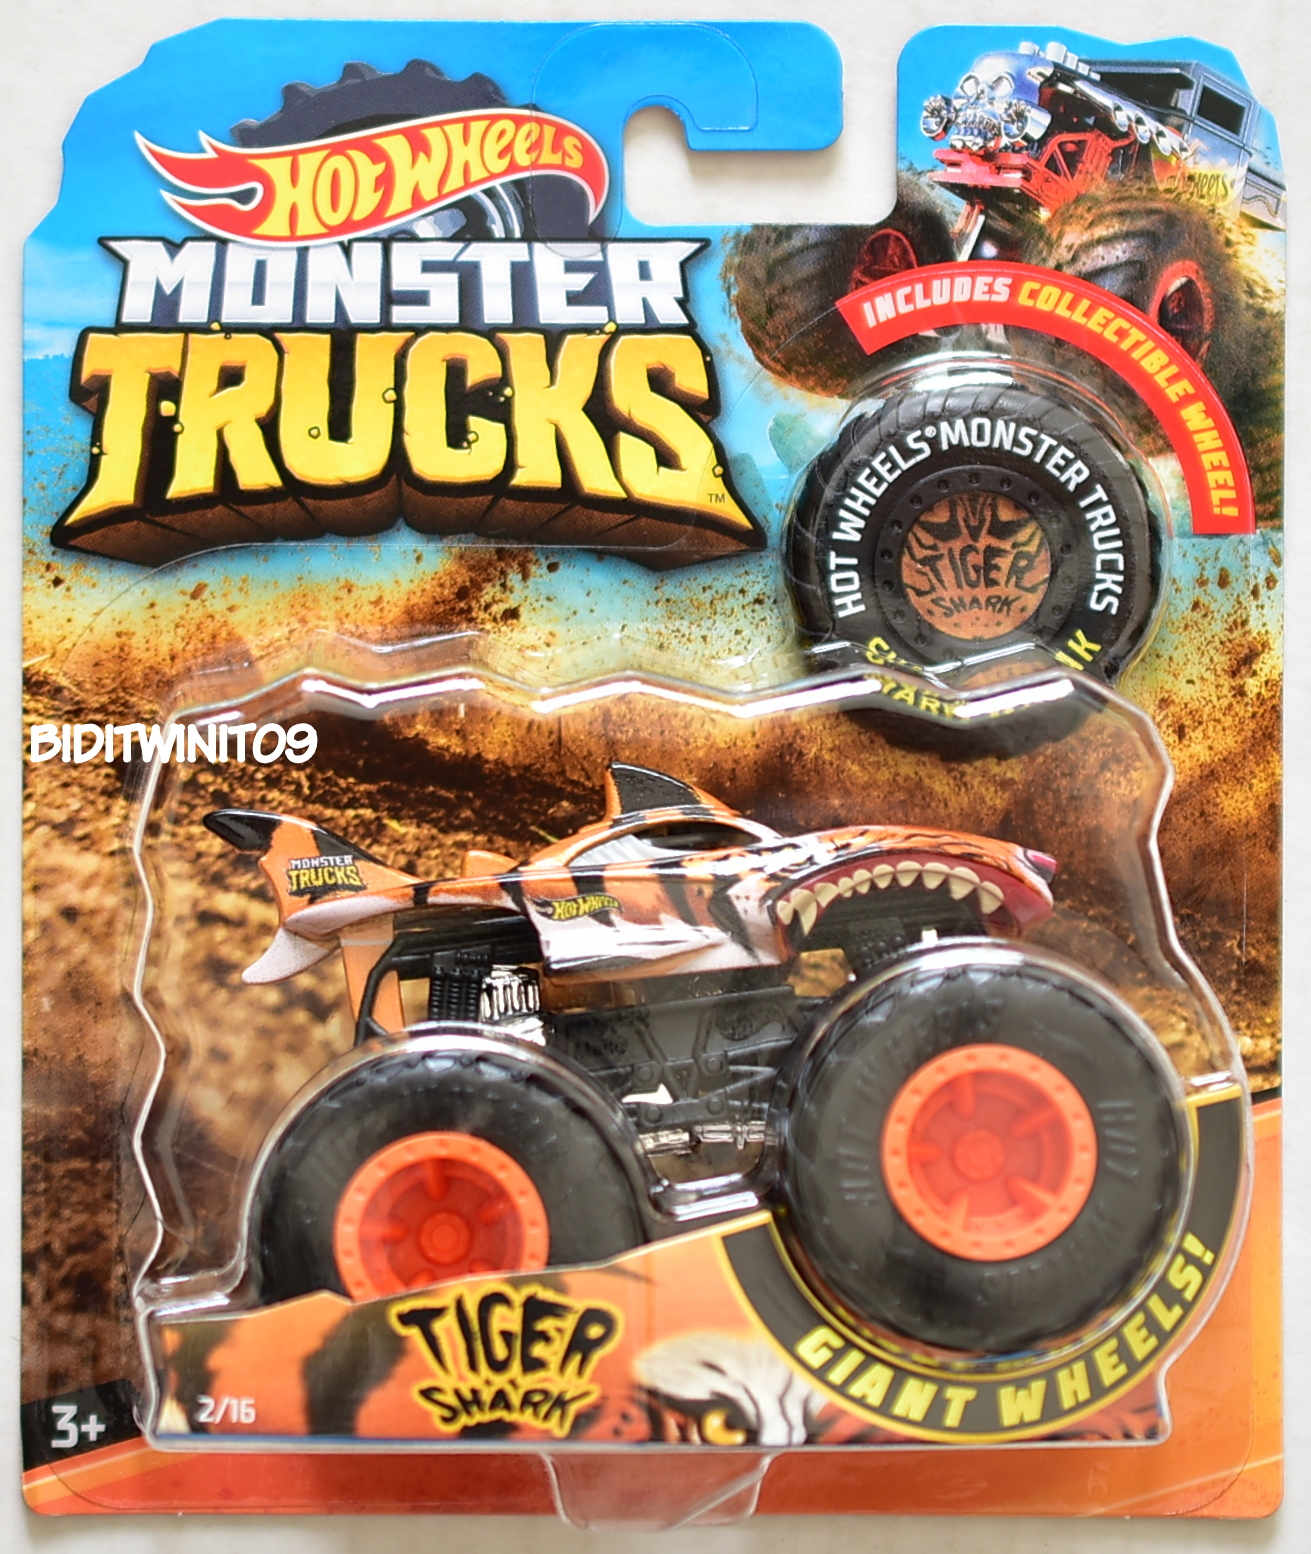 HOT WHEELS 2018 MONSTER TRUCKS GIANT WHEELS TIGER SHARK #2/16